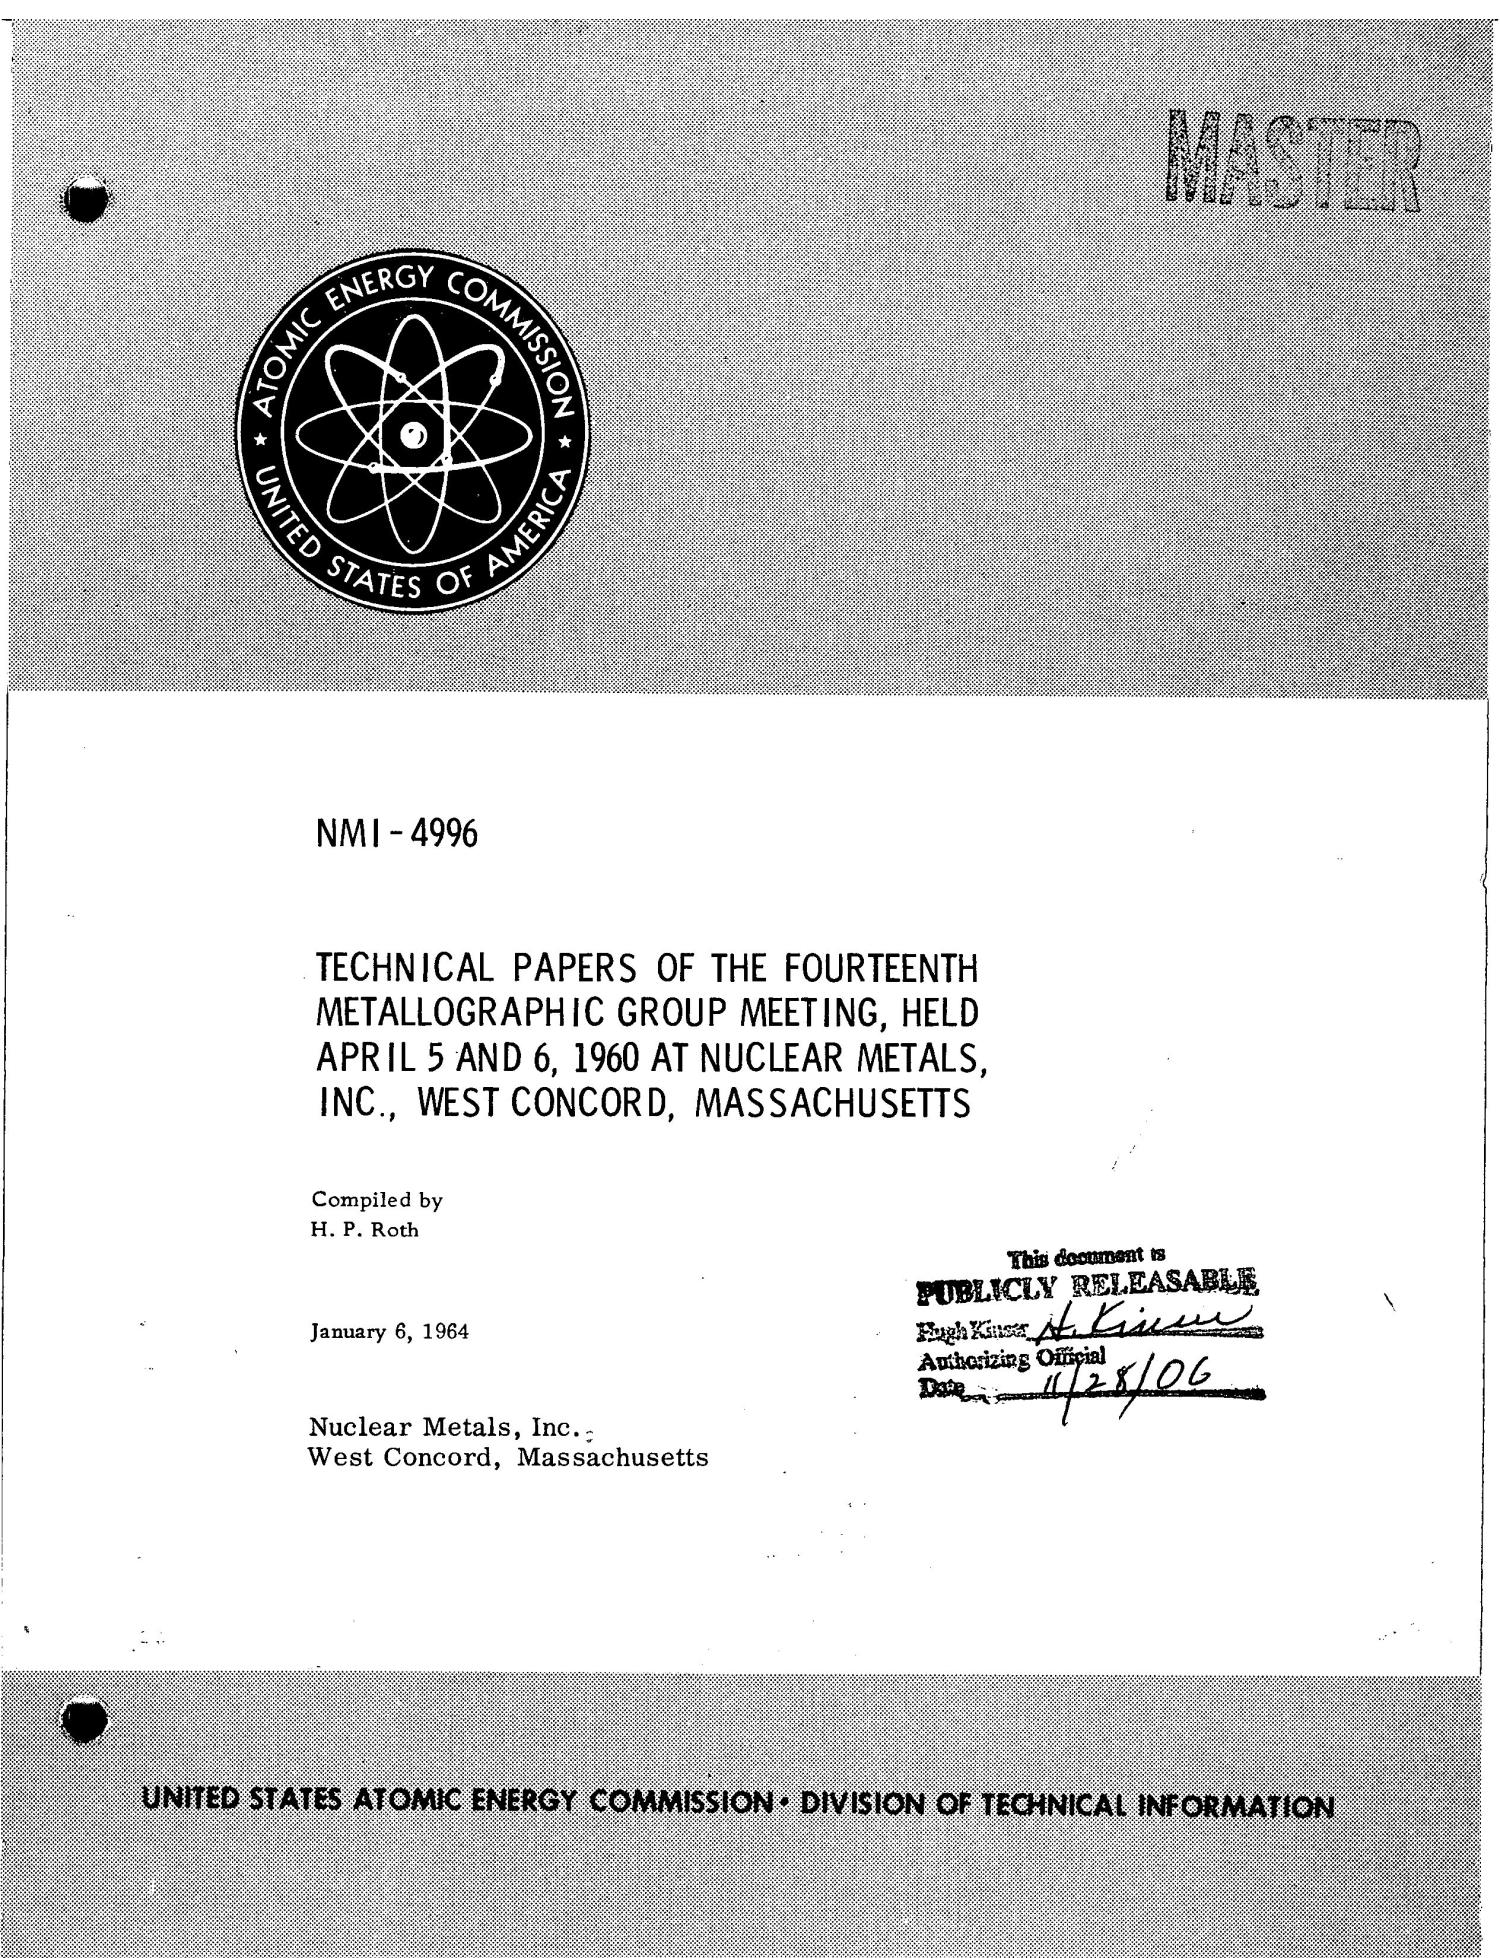 TECHNICAL PAPERS OF THE FOURTEENTH METALLOGRAPHIC GROUP MEETING, HELD APRIL 5-6, 1960 AT NUCLEAR METALS, INC., WEST CONCORD, MASSACHUSETTS                                                                                                      [Sequence #]: 1 of 179